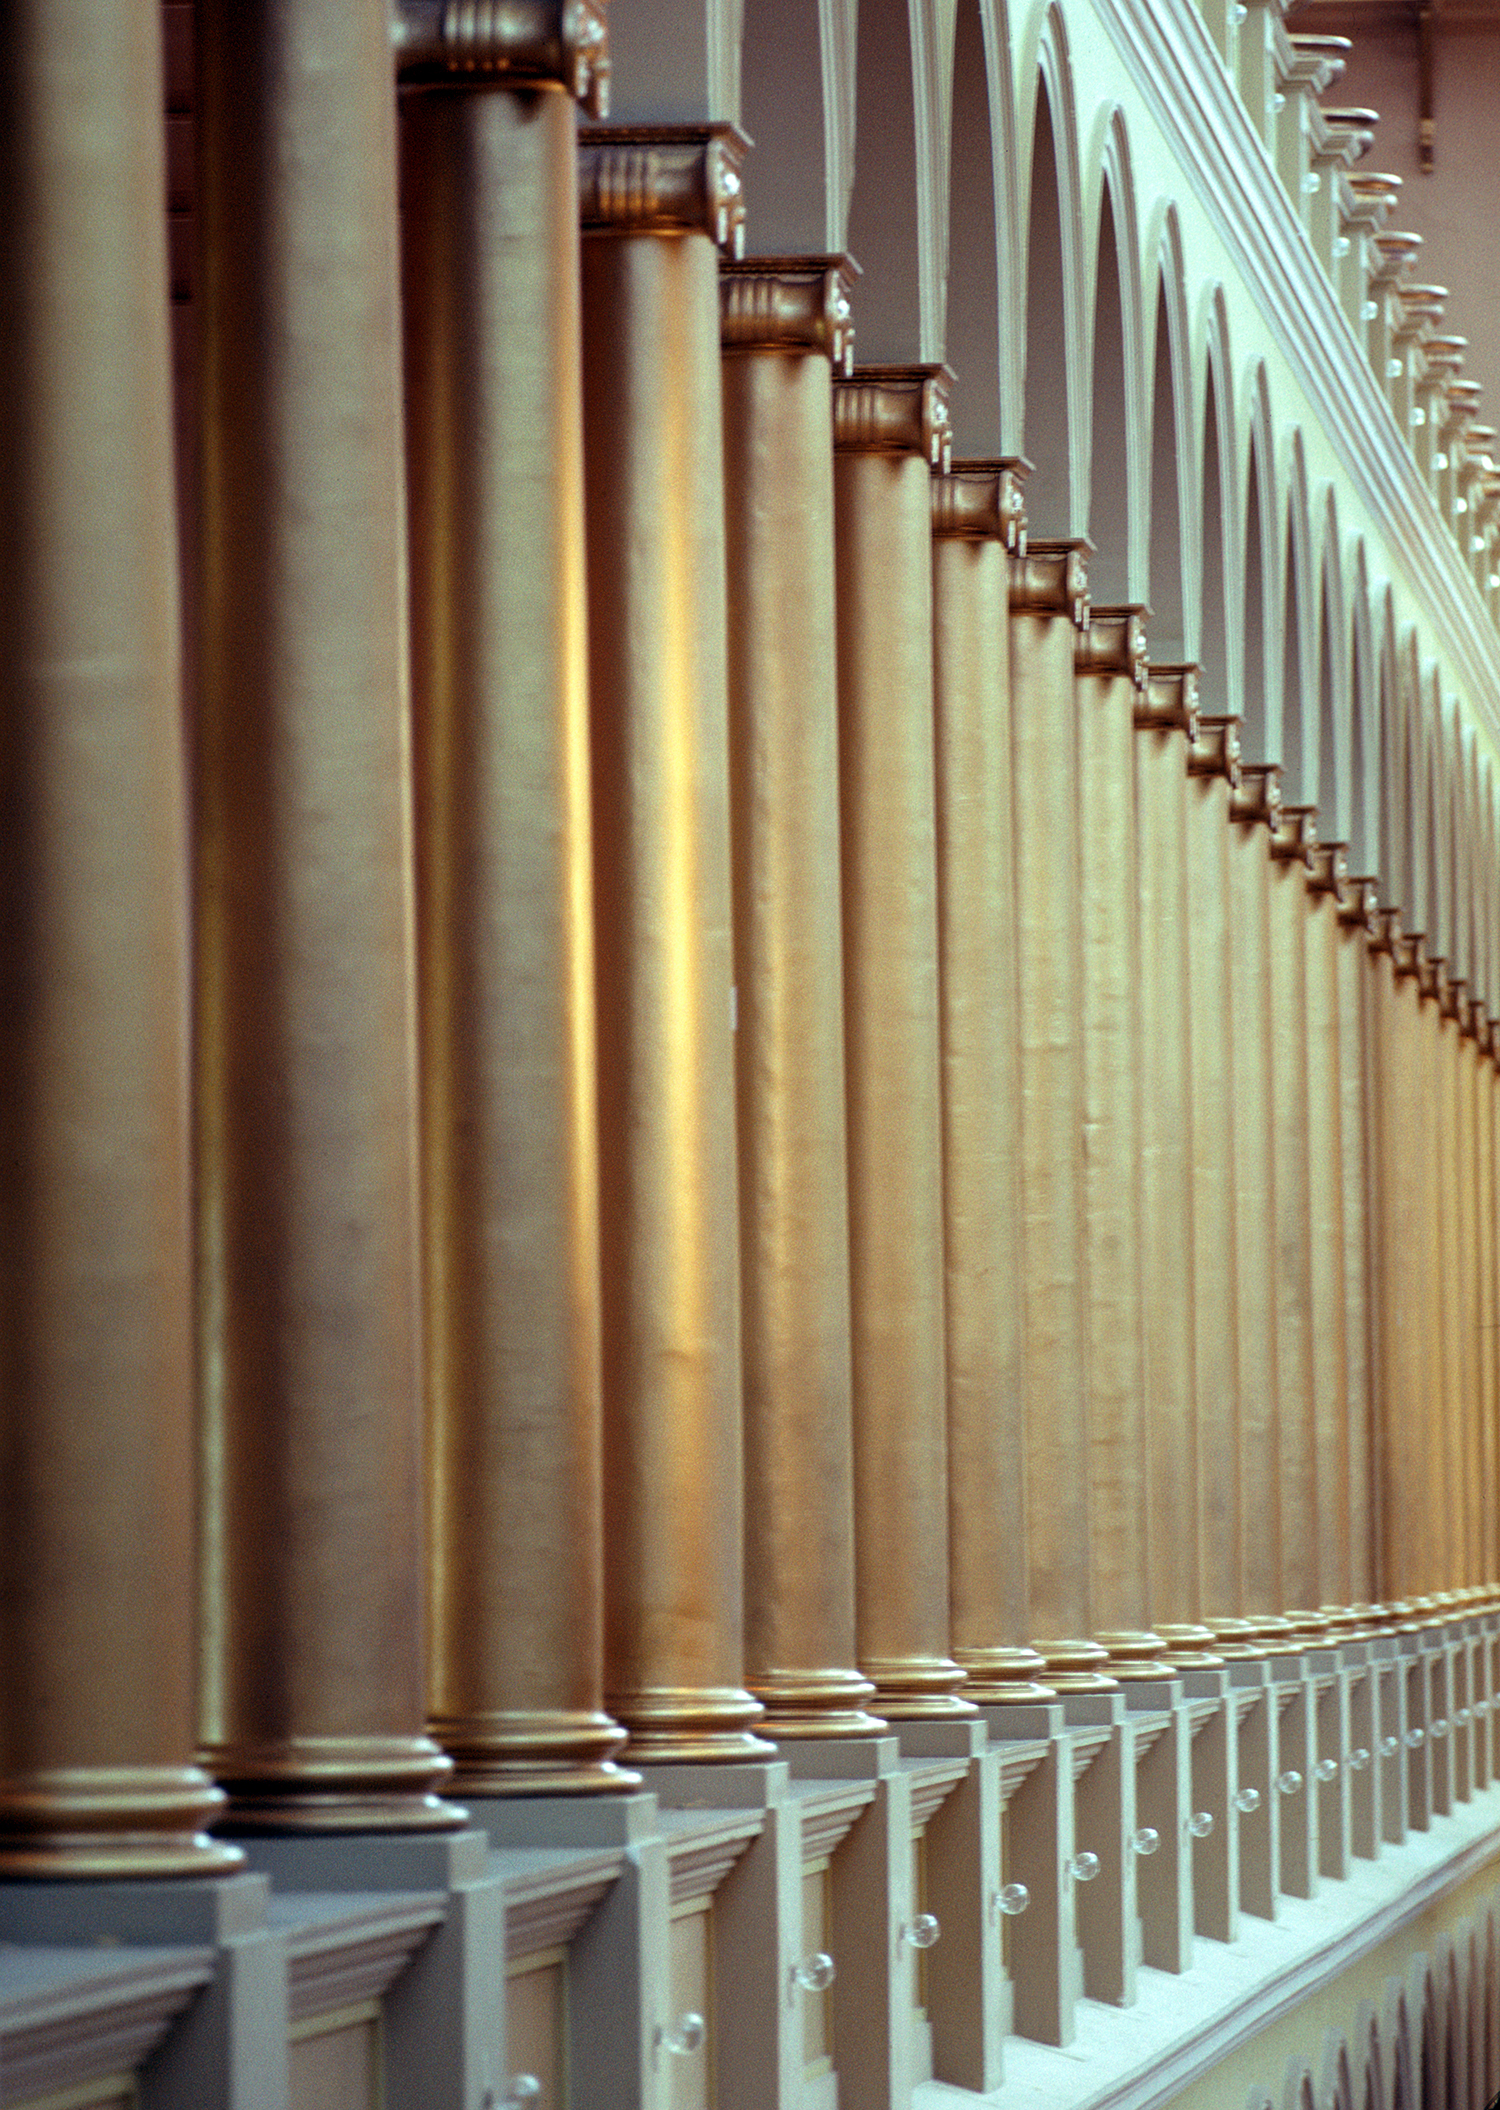 Columns at the National Building Museum